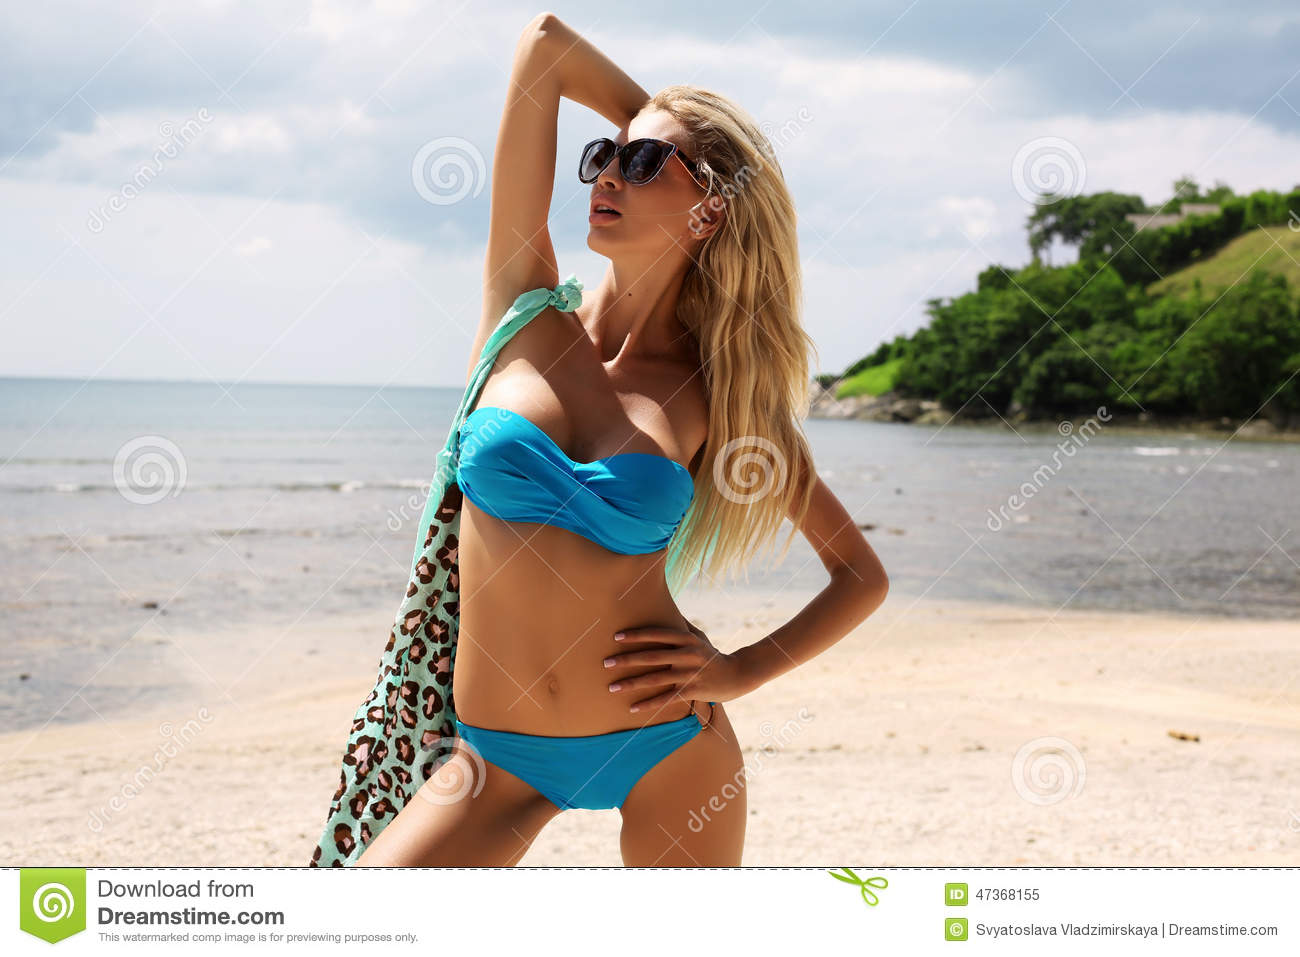 Woman With Blond Hair In Bikini And Sunglasses Relaxing On ...